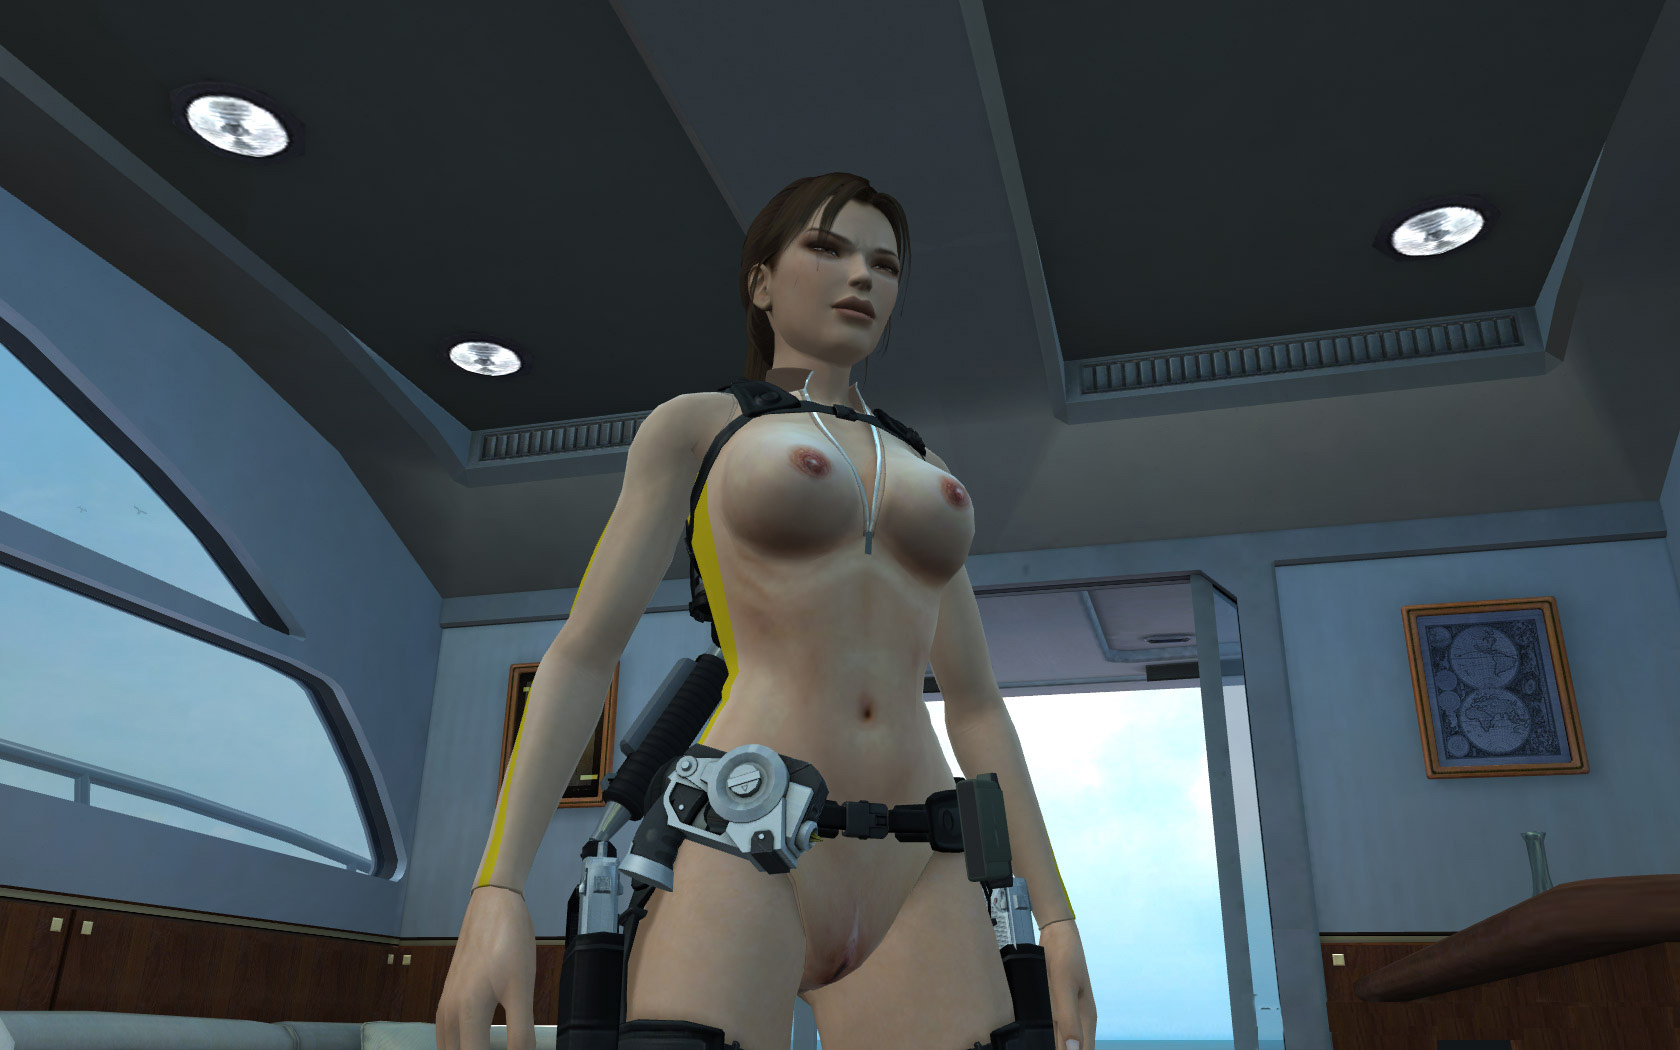 Tomb raider underworld big boobs mod porn comic